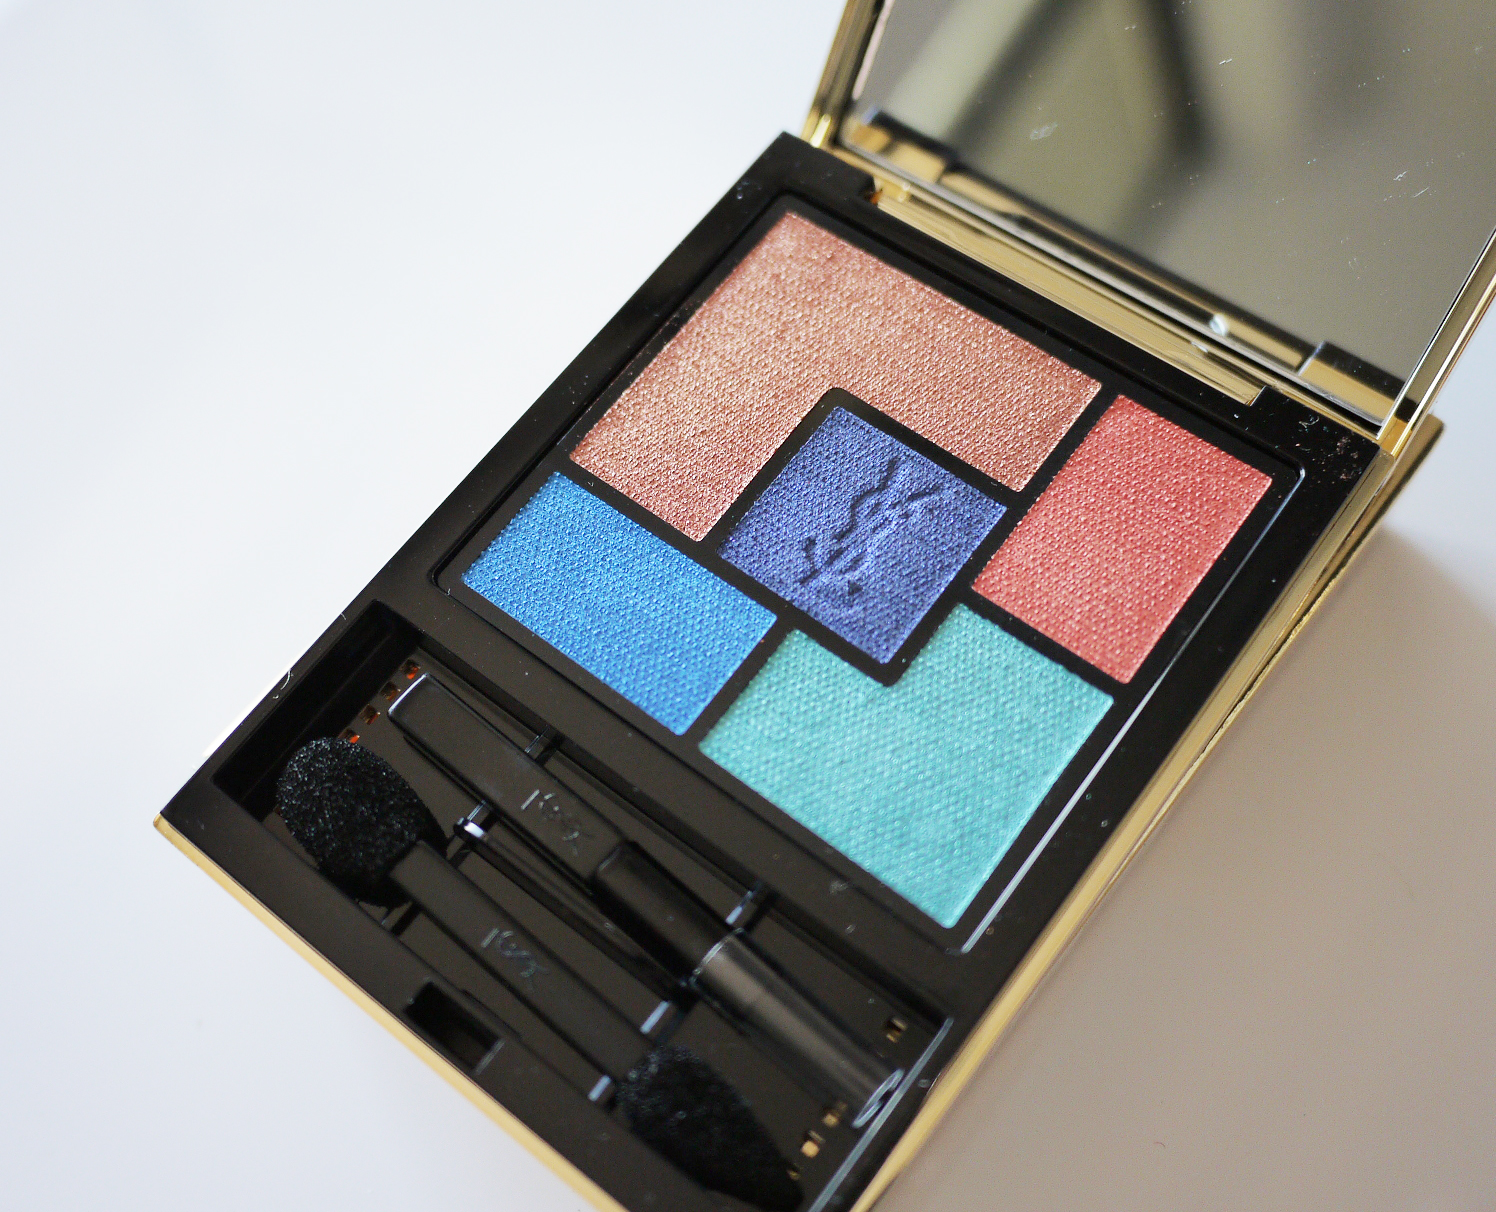 ysl-5-colour-eyeshadow-palette-summer-2014.jpg